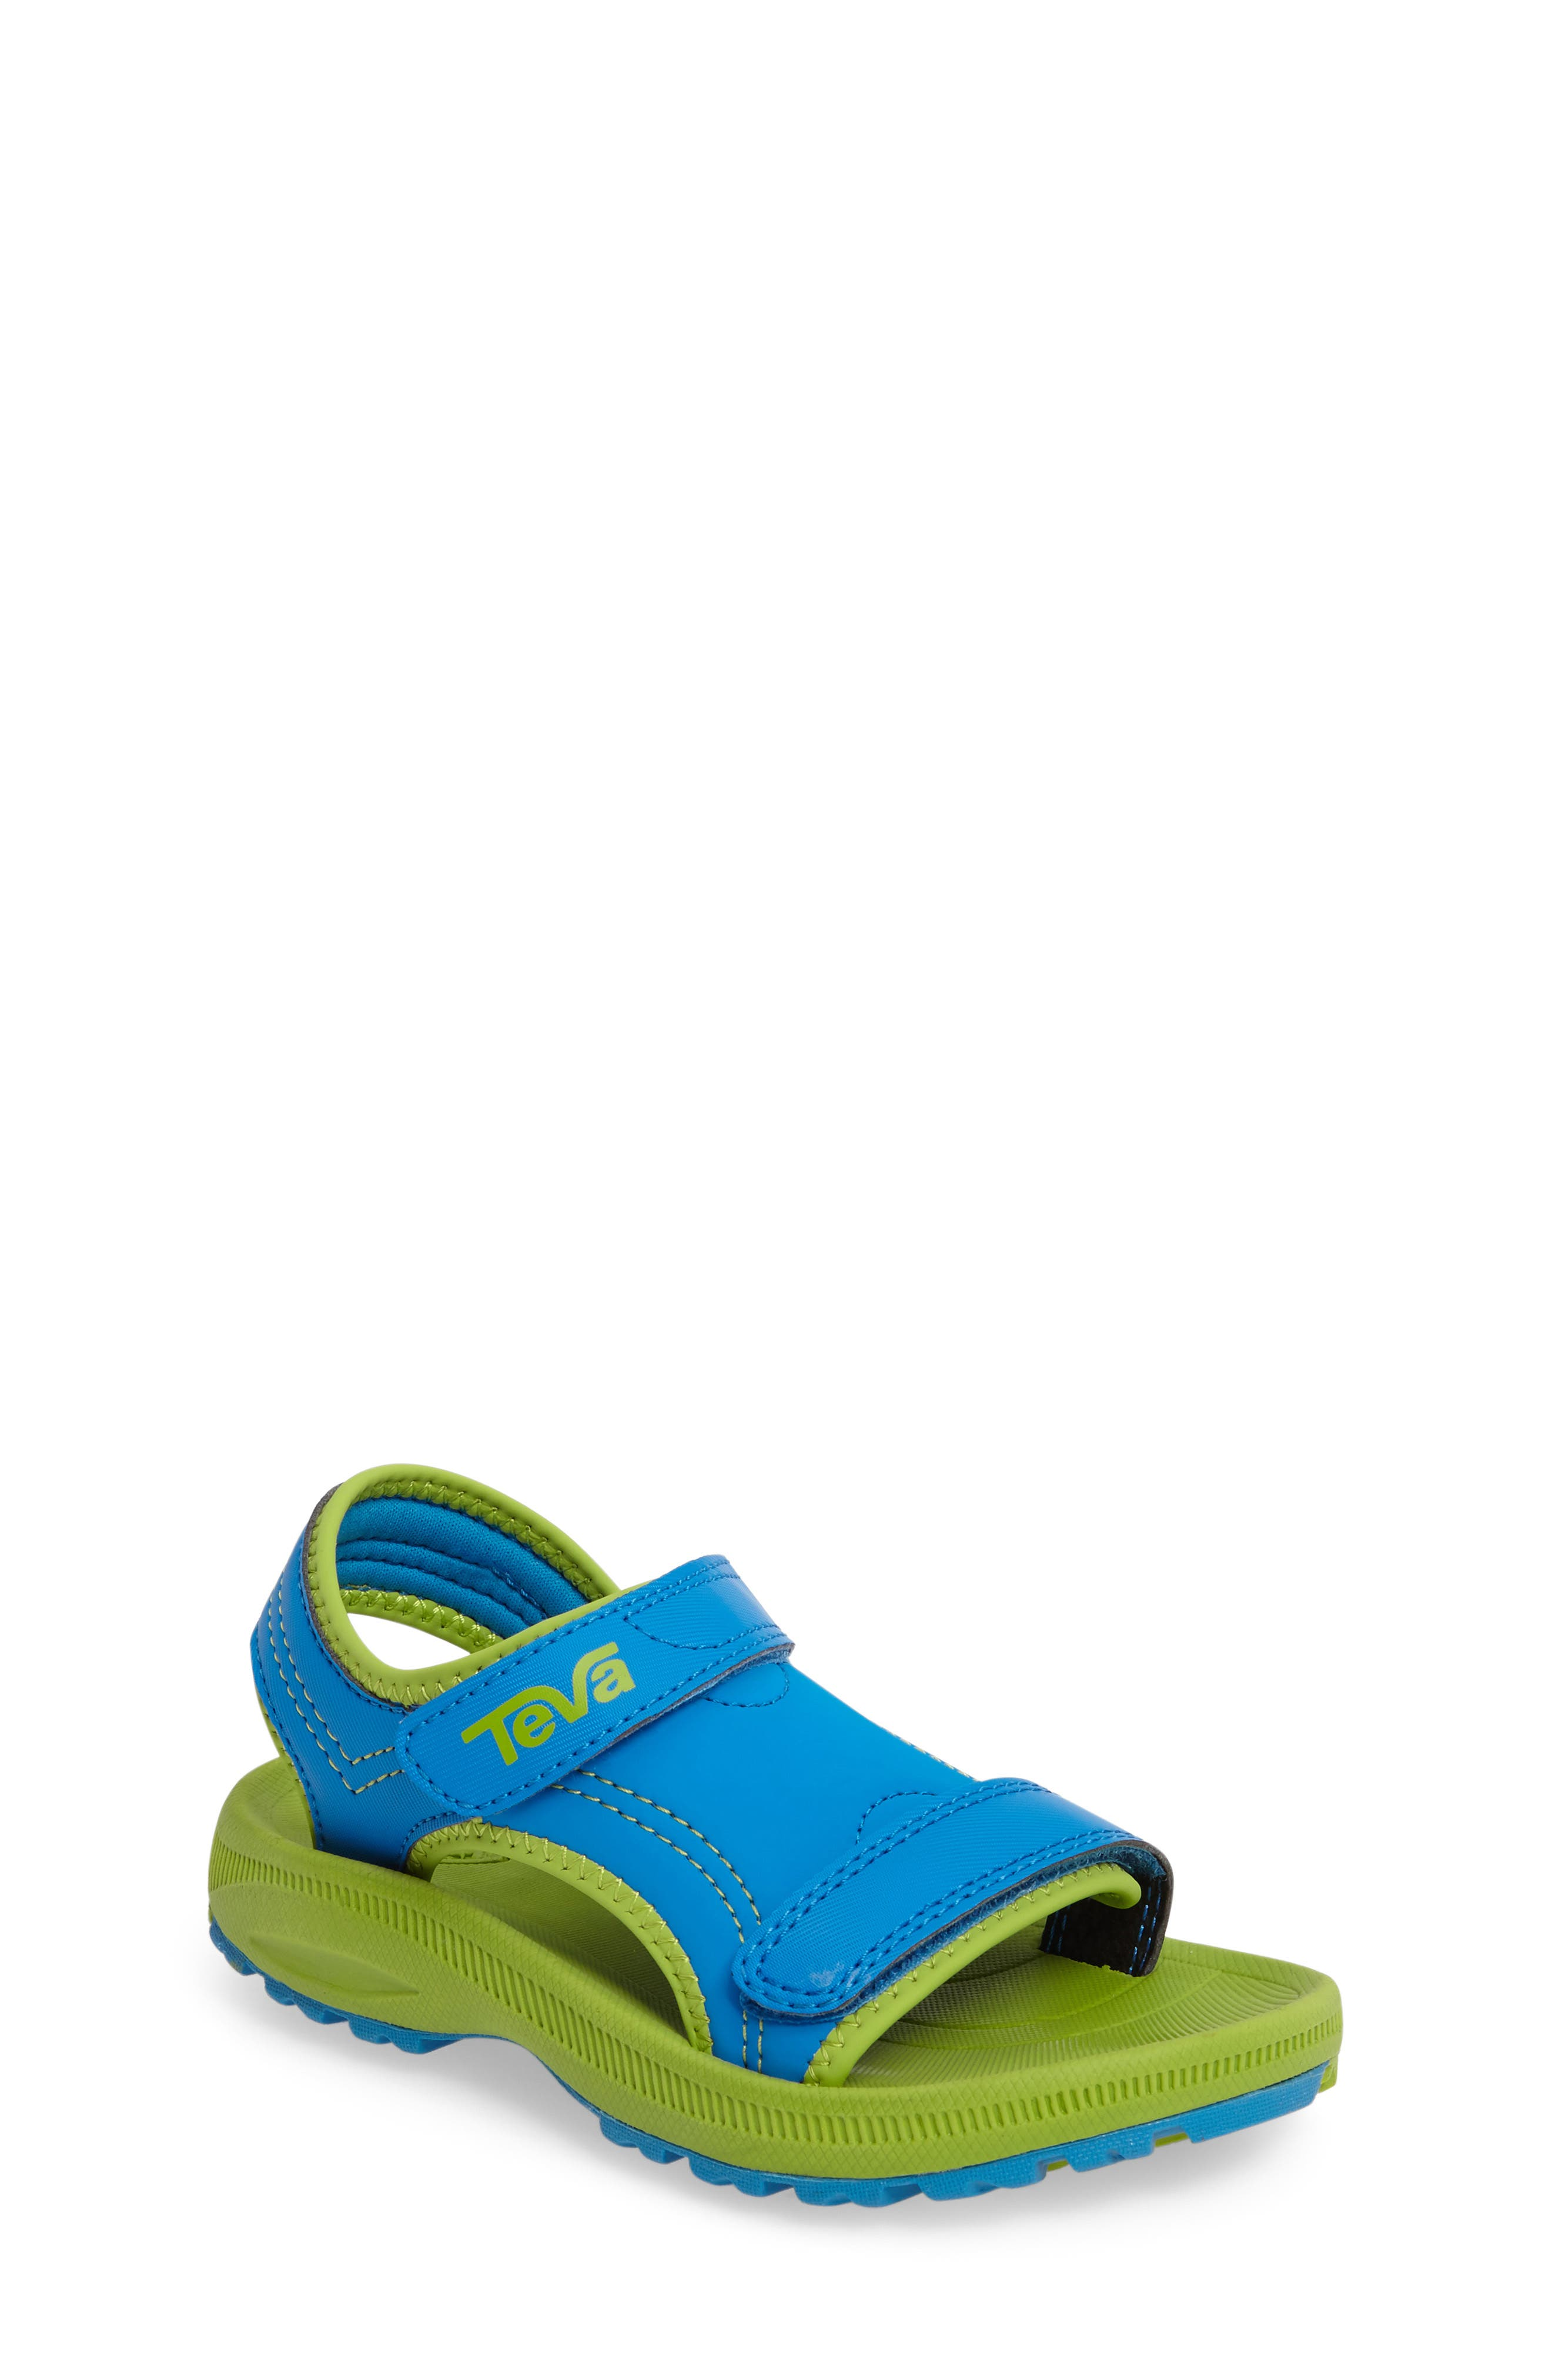 Teva 'Psyclone 5' Sandal (Baby, Walker, Toddler & Little Kid)